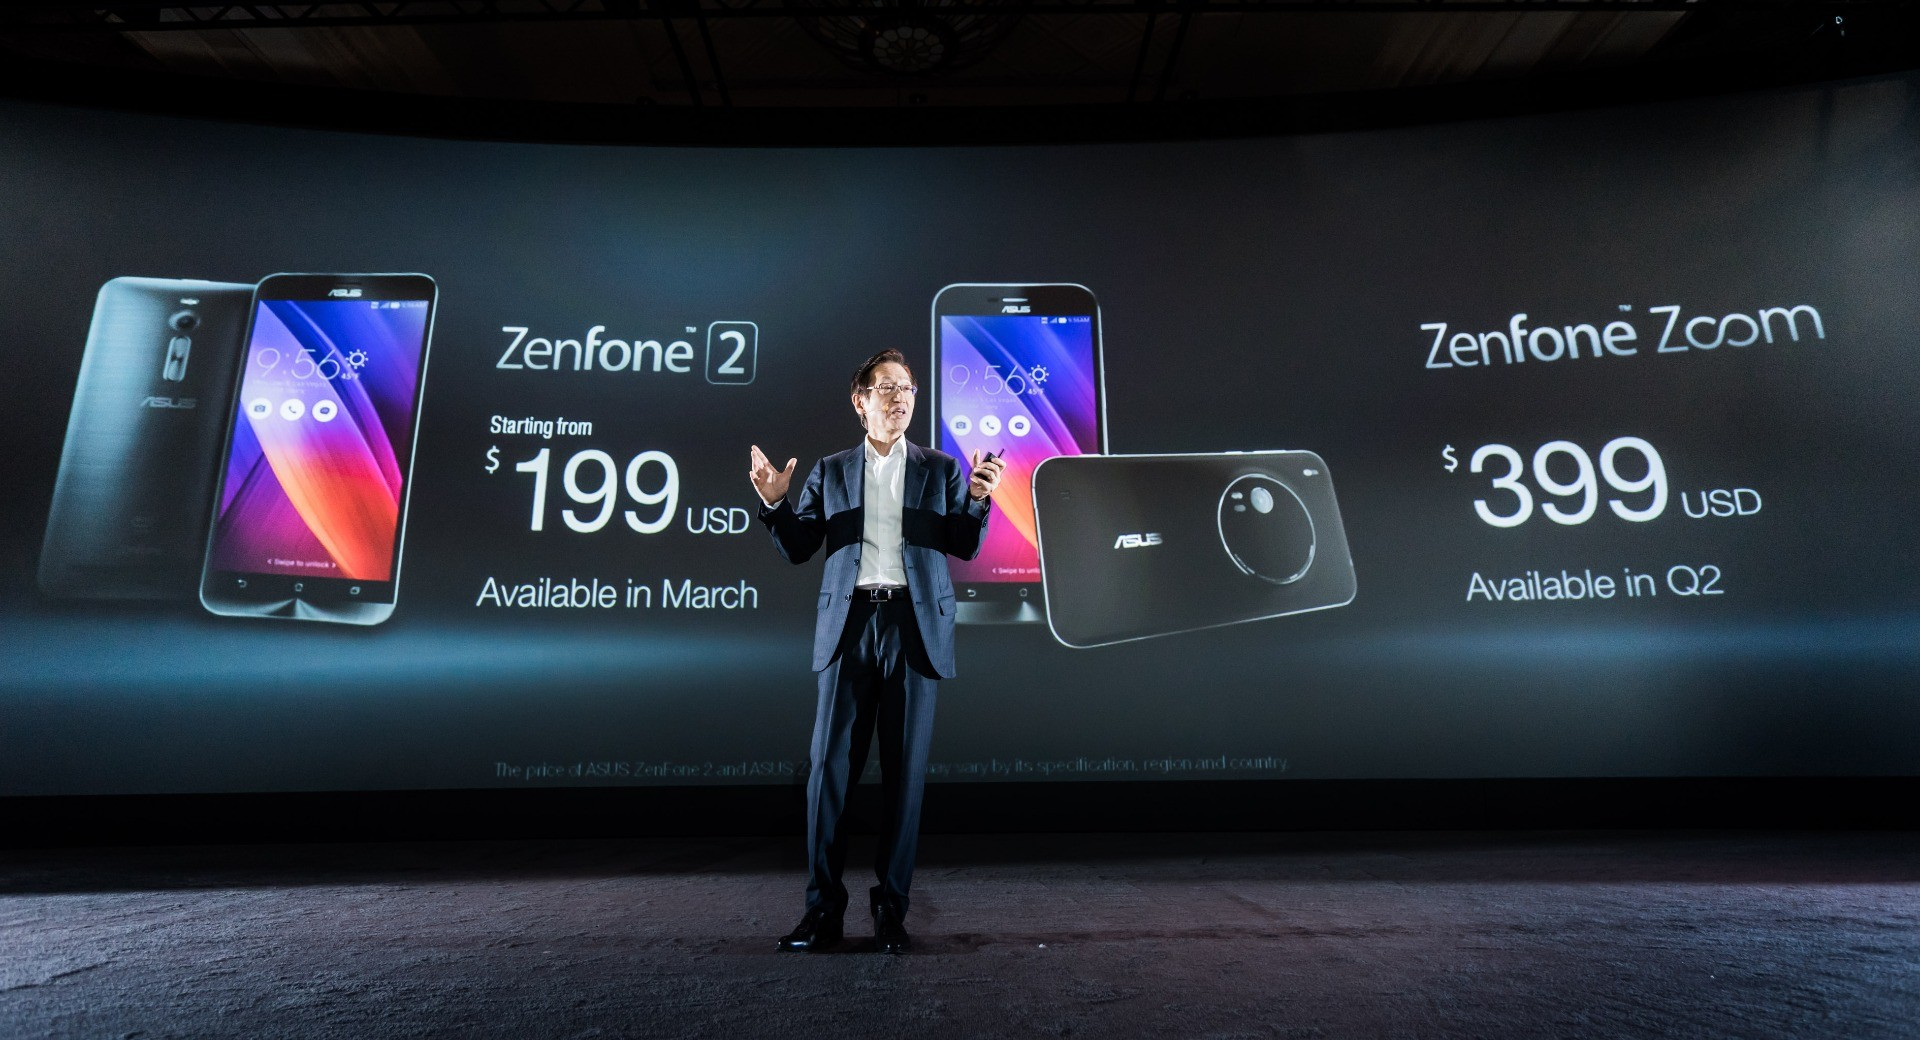 Zenfone Zoom World's Thinnest 3X Optical Zoom Smartphone